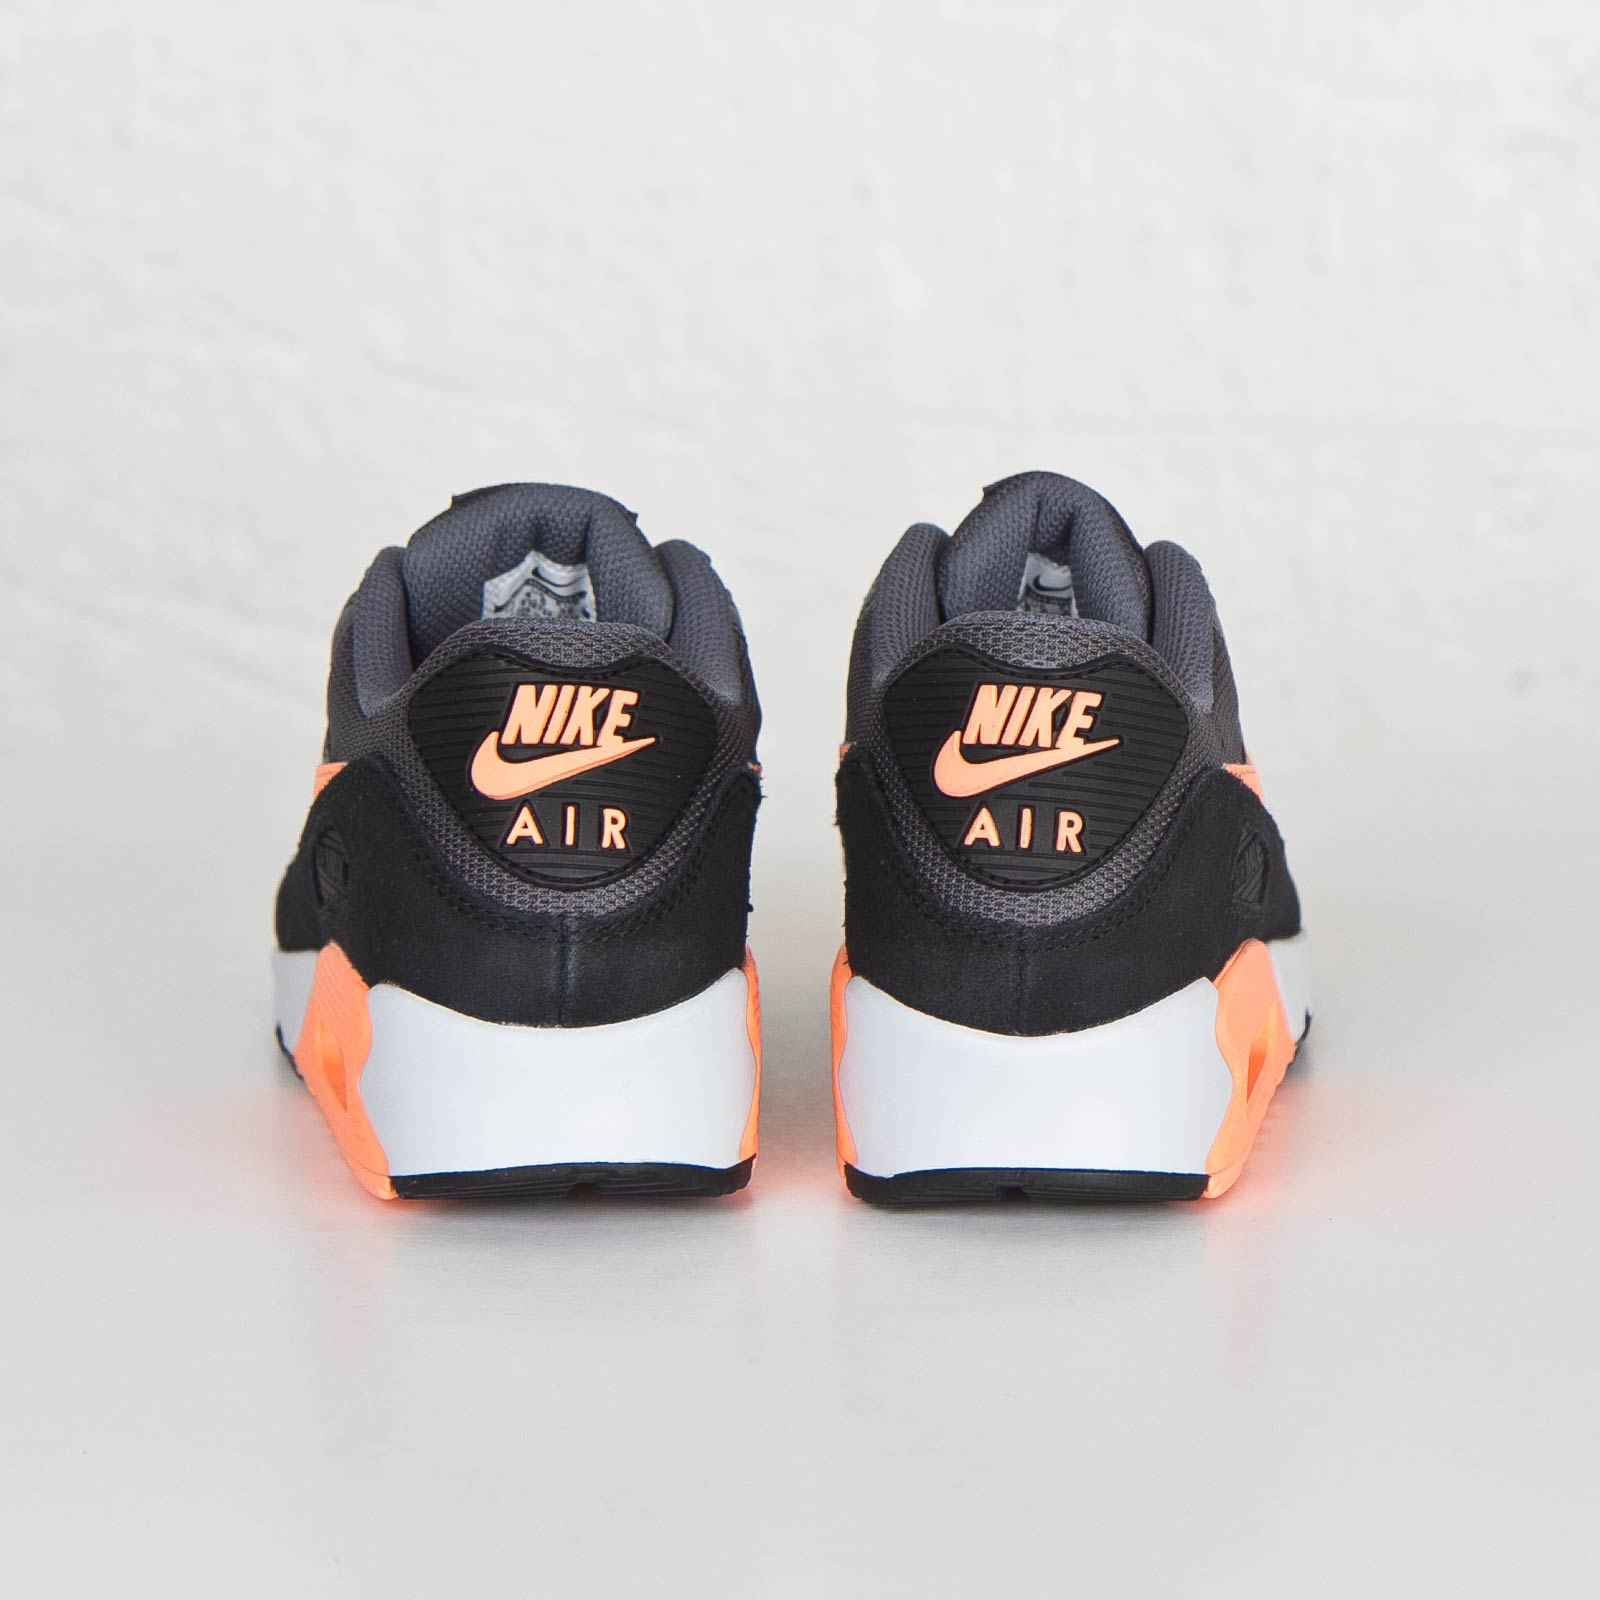 finest selection f7b53 9b770 Nike Air Max 90 Essential - 616730-021 - Sneakersnstuff | sneakers &  streetwear online since 1999